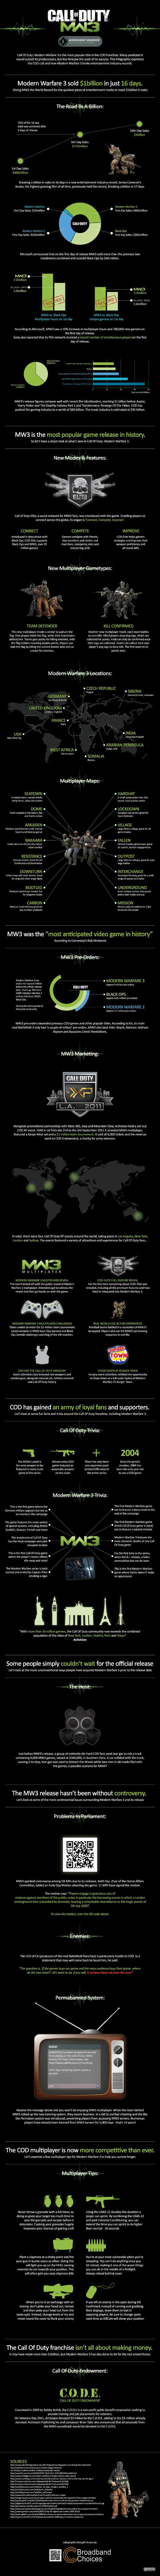 Modern-Warfare-3-Achievements